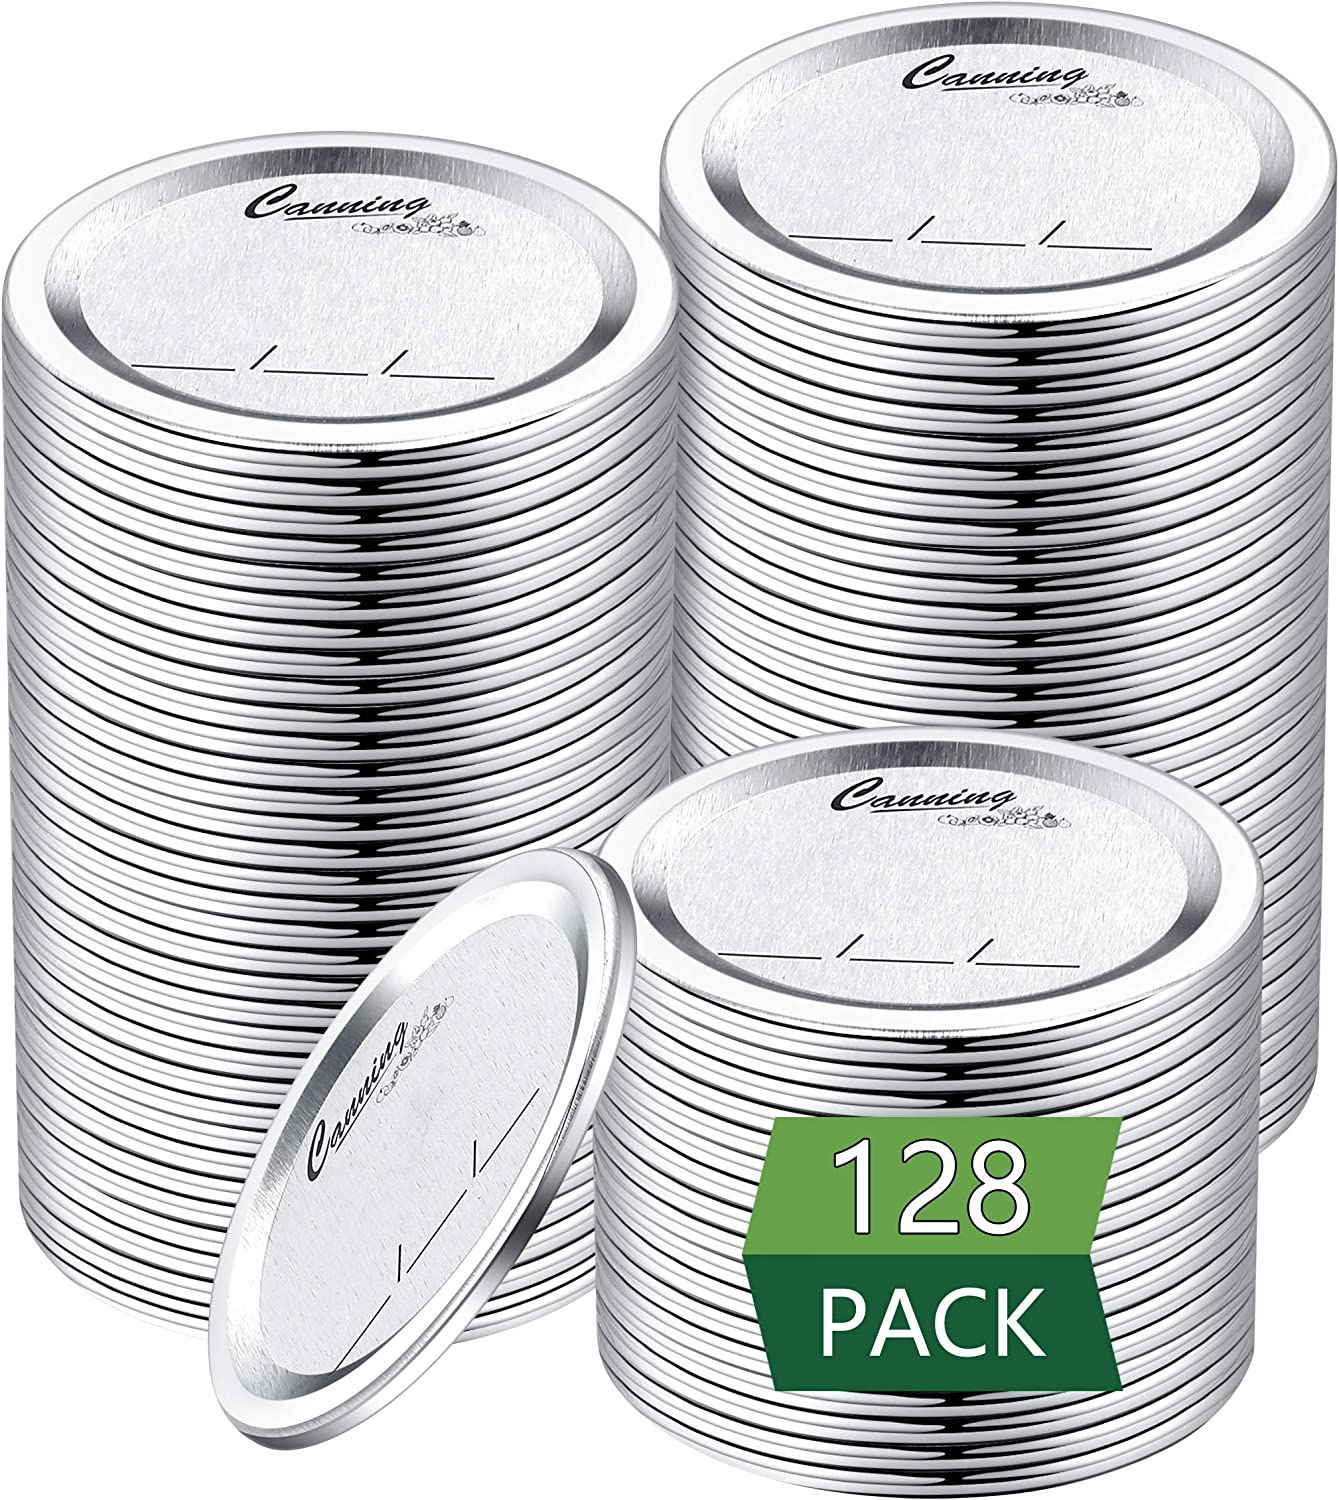 128-Count, Regular Mouth Canning Lids for Ball, Kerr Jars - Split-Type Metal Mason Jar Lids for Canning - Food Grade Material, 100% Fit & Airtight for Regular Mouth Jars